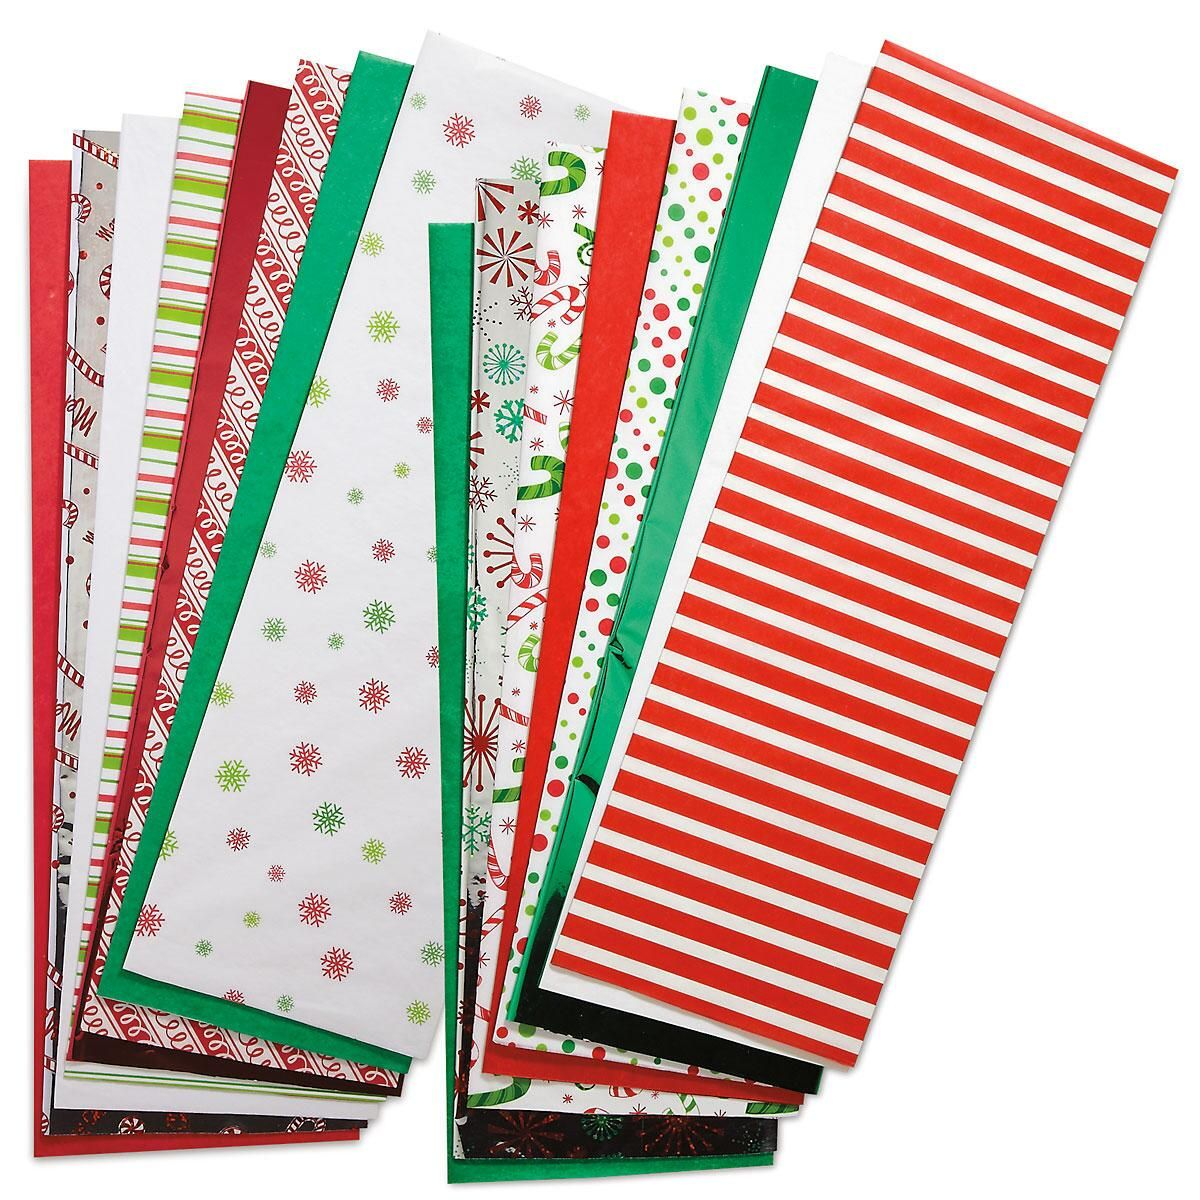 Christmas Prints and Solids Tissue Value Pack - 300 Sheets